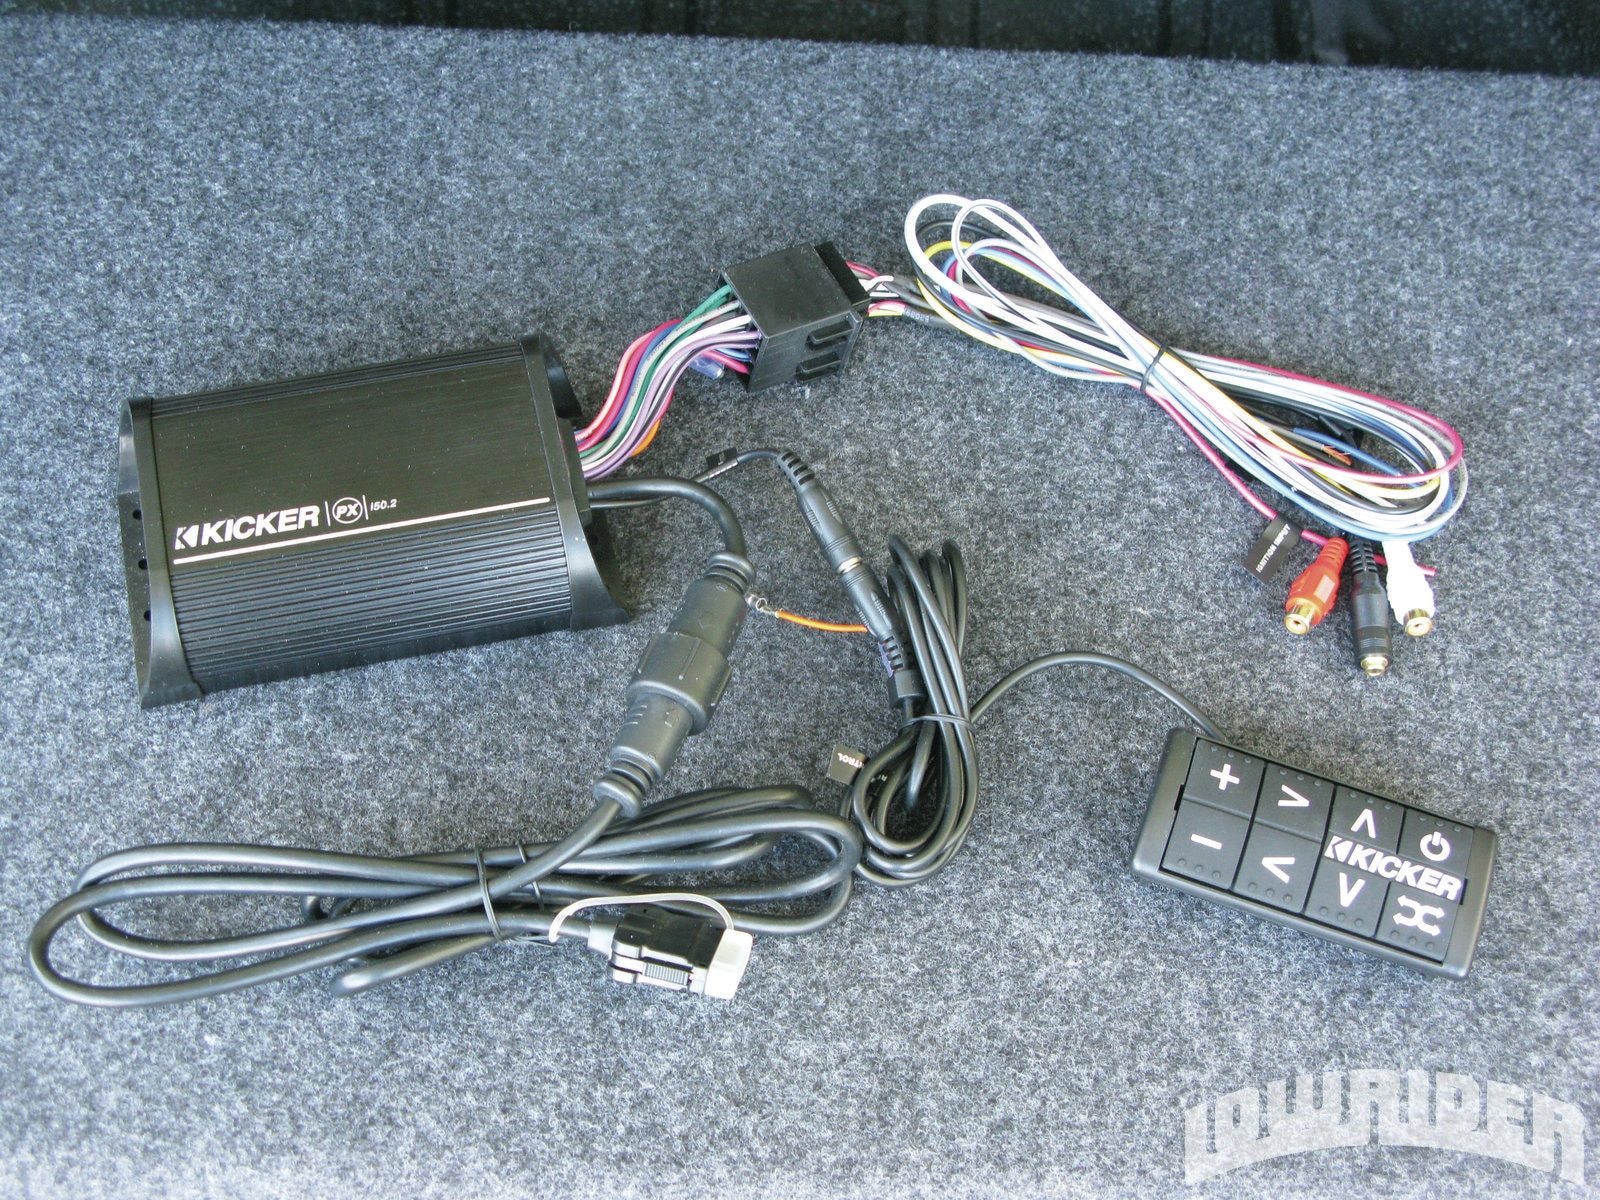 <strong>2</strong>. This is the PXi50.2. On the left is the brain of the unit. At the right is the wired remote control unit. Below is the 30-pin connection cable. The unit is also compatible with Apple's lightning connectors.